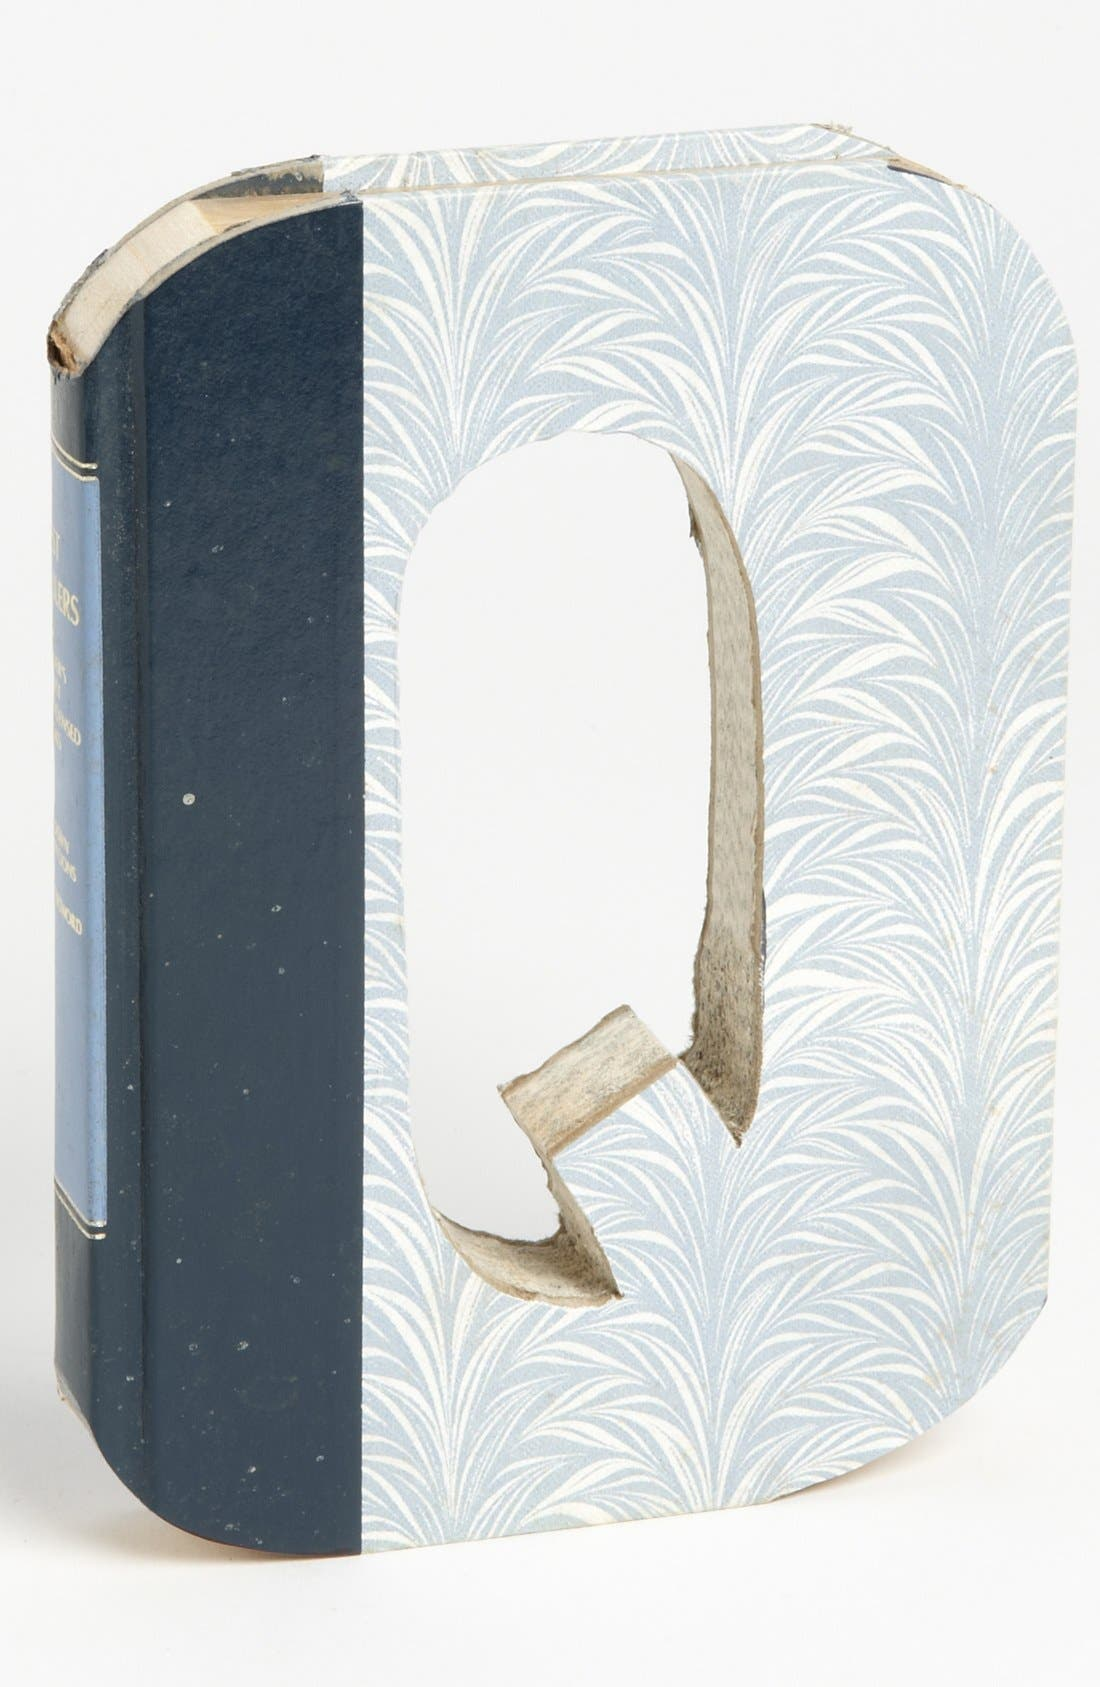 'One of a Kind Letter' Hand-Carved Recycled Book Shelf Art,                             Main thumbnail 17, color,